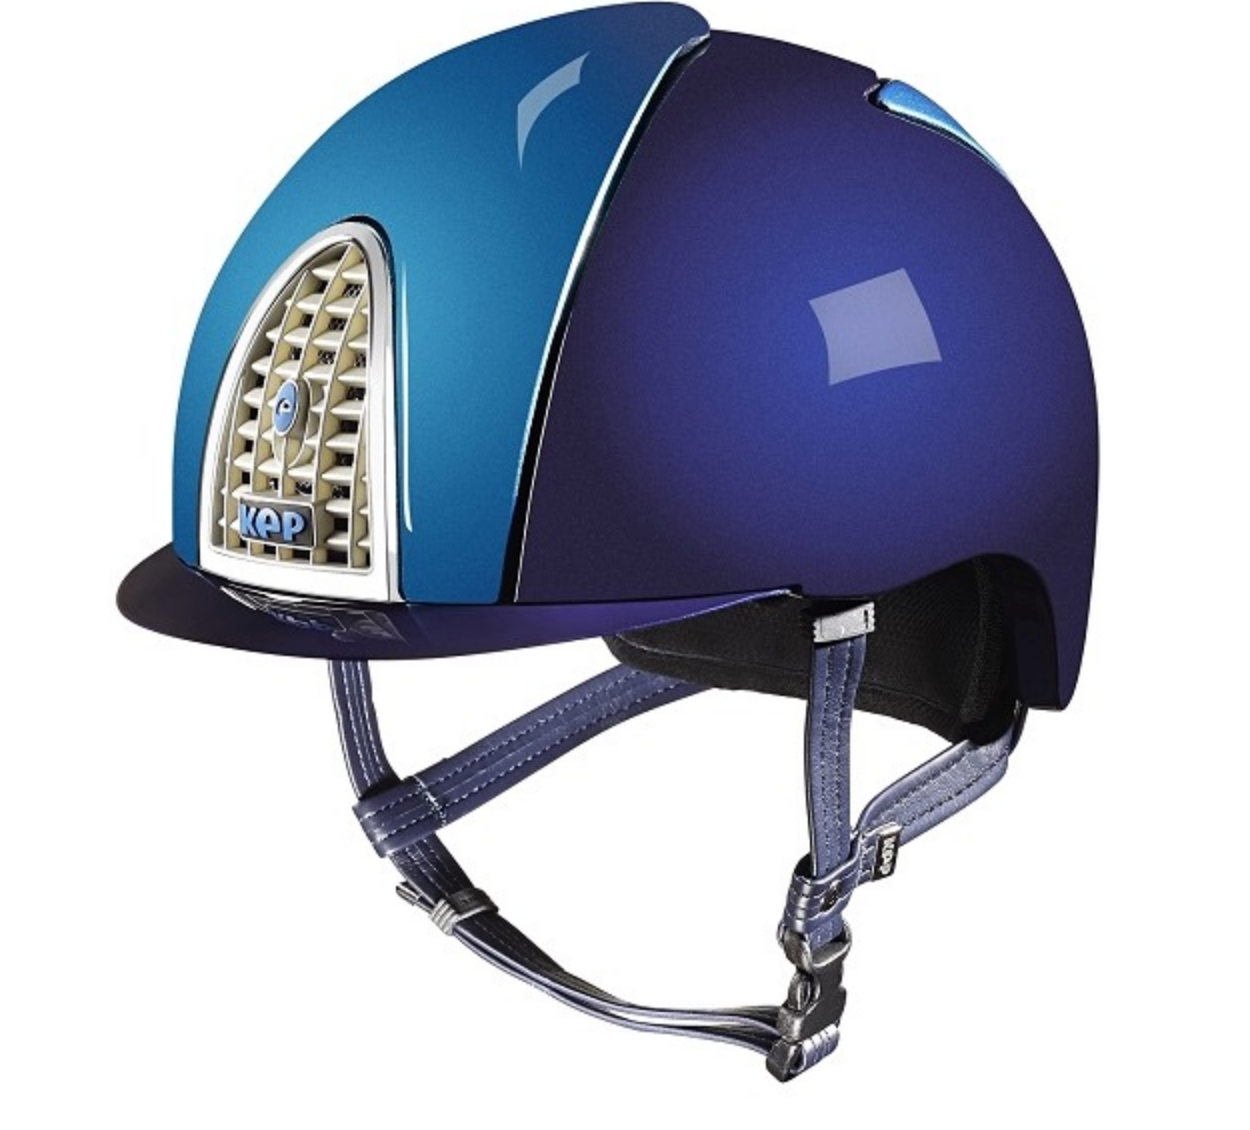 KEP Helmet front and back panel add-on for the stylish equestrian.